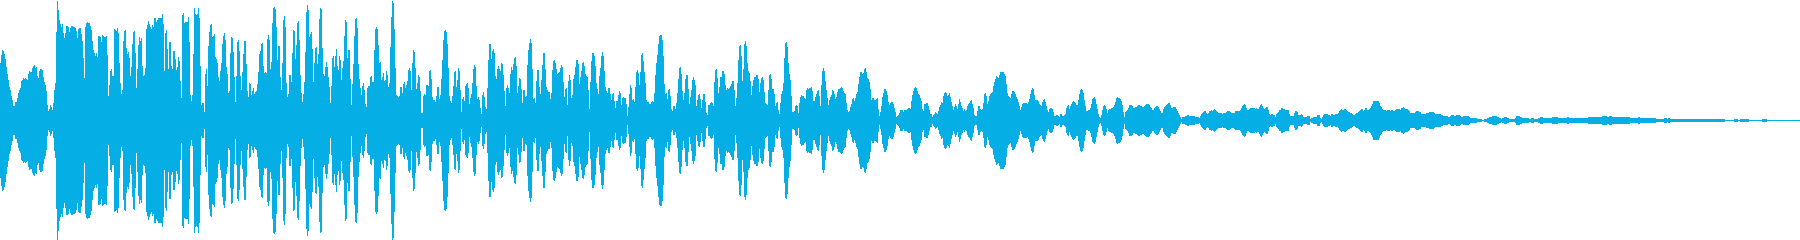 DANK (Sound to strike heavy trees on the floor)'s reproduced waveform